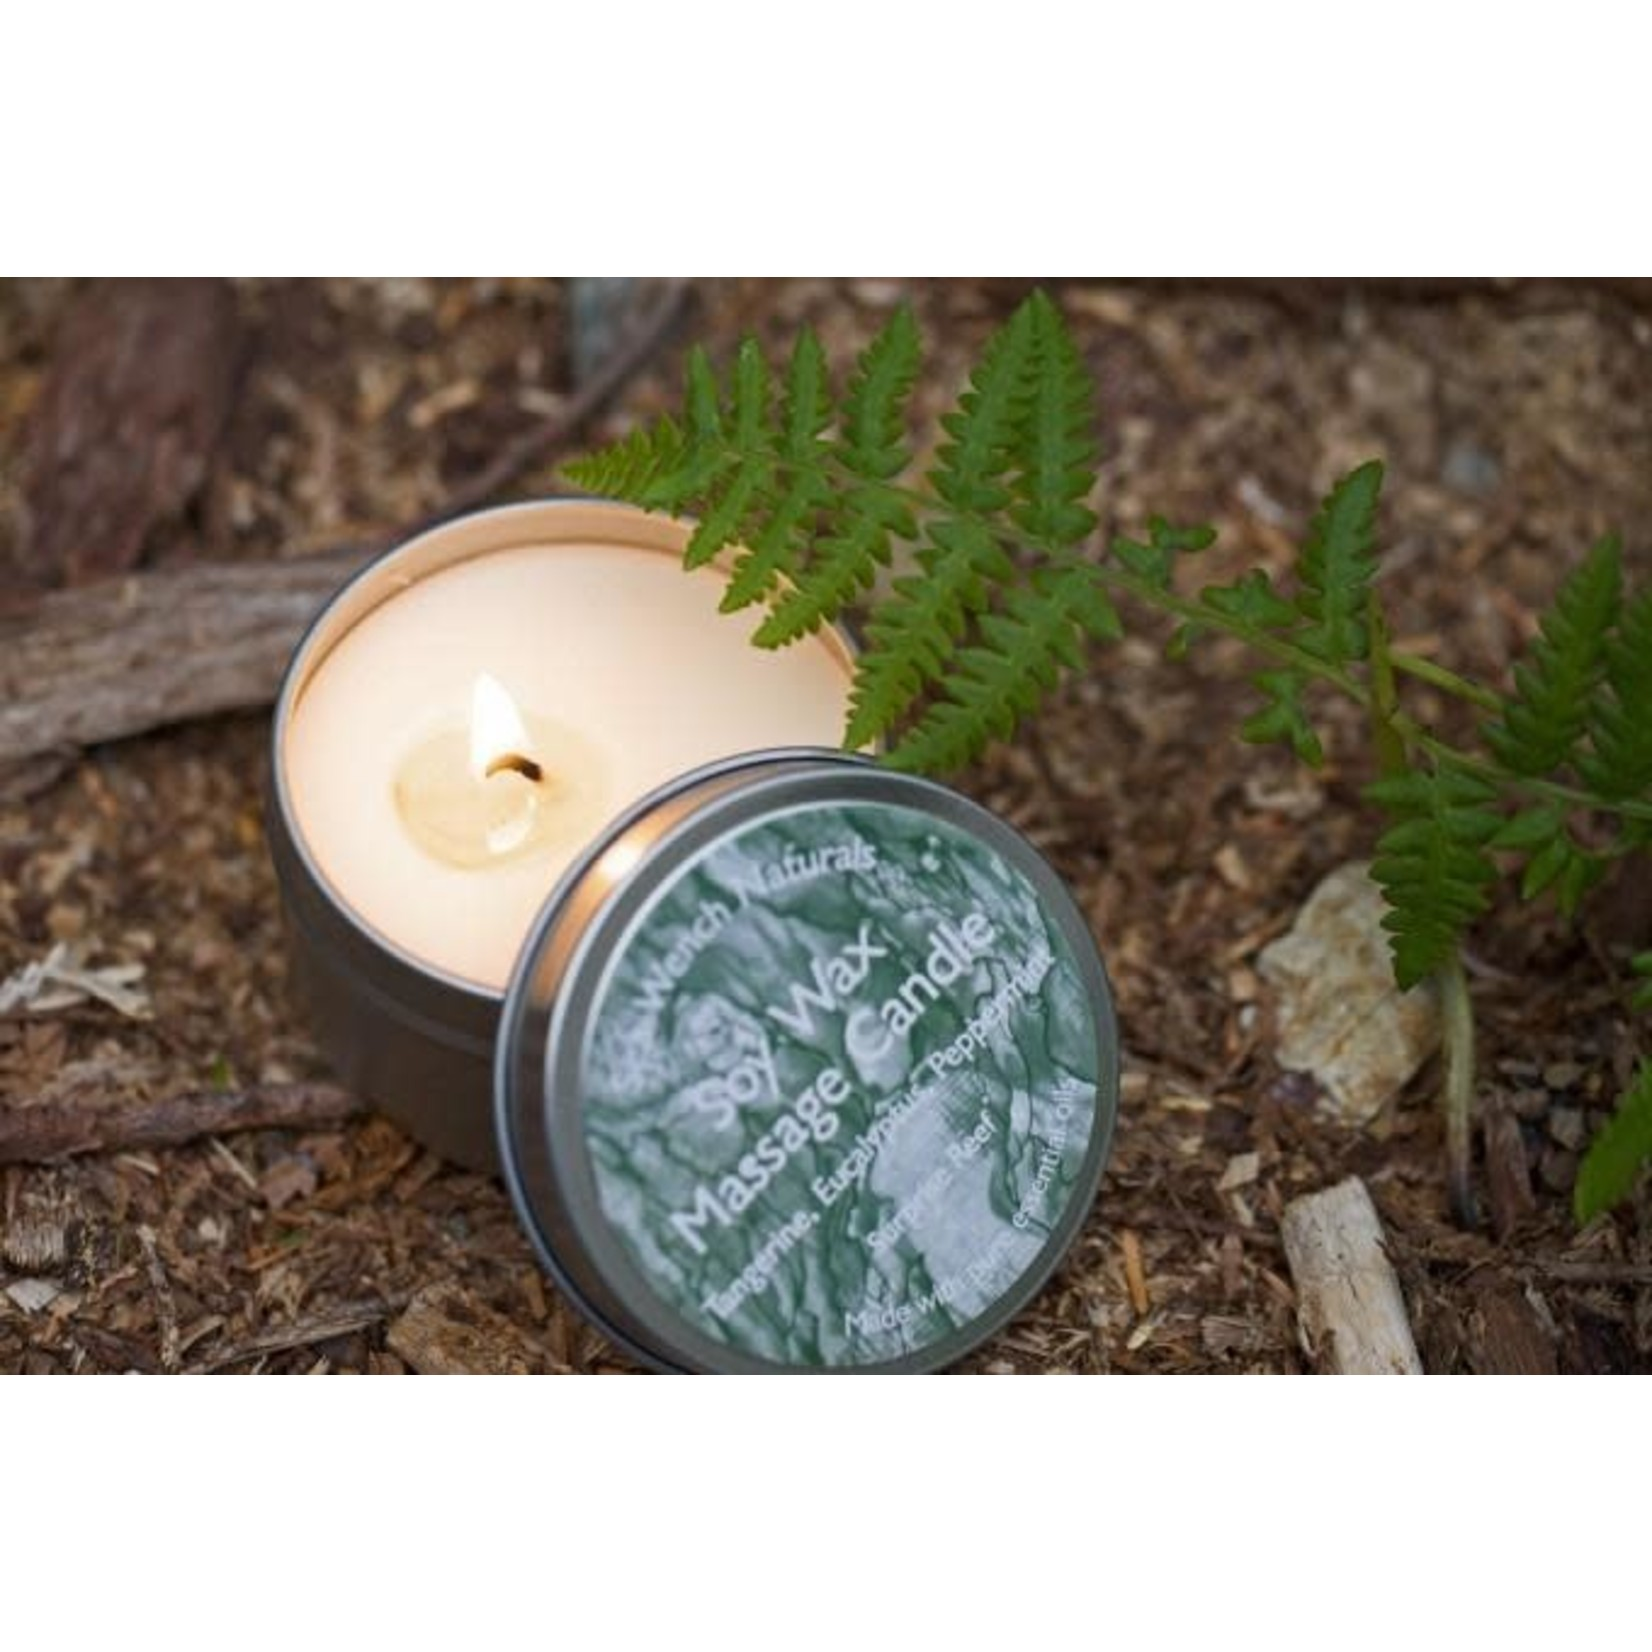 Sea Wench Soy Wax Massage Candle - Surprise Reef